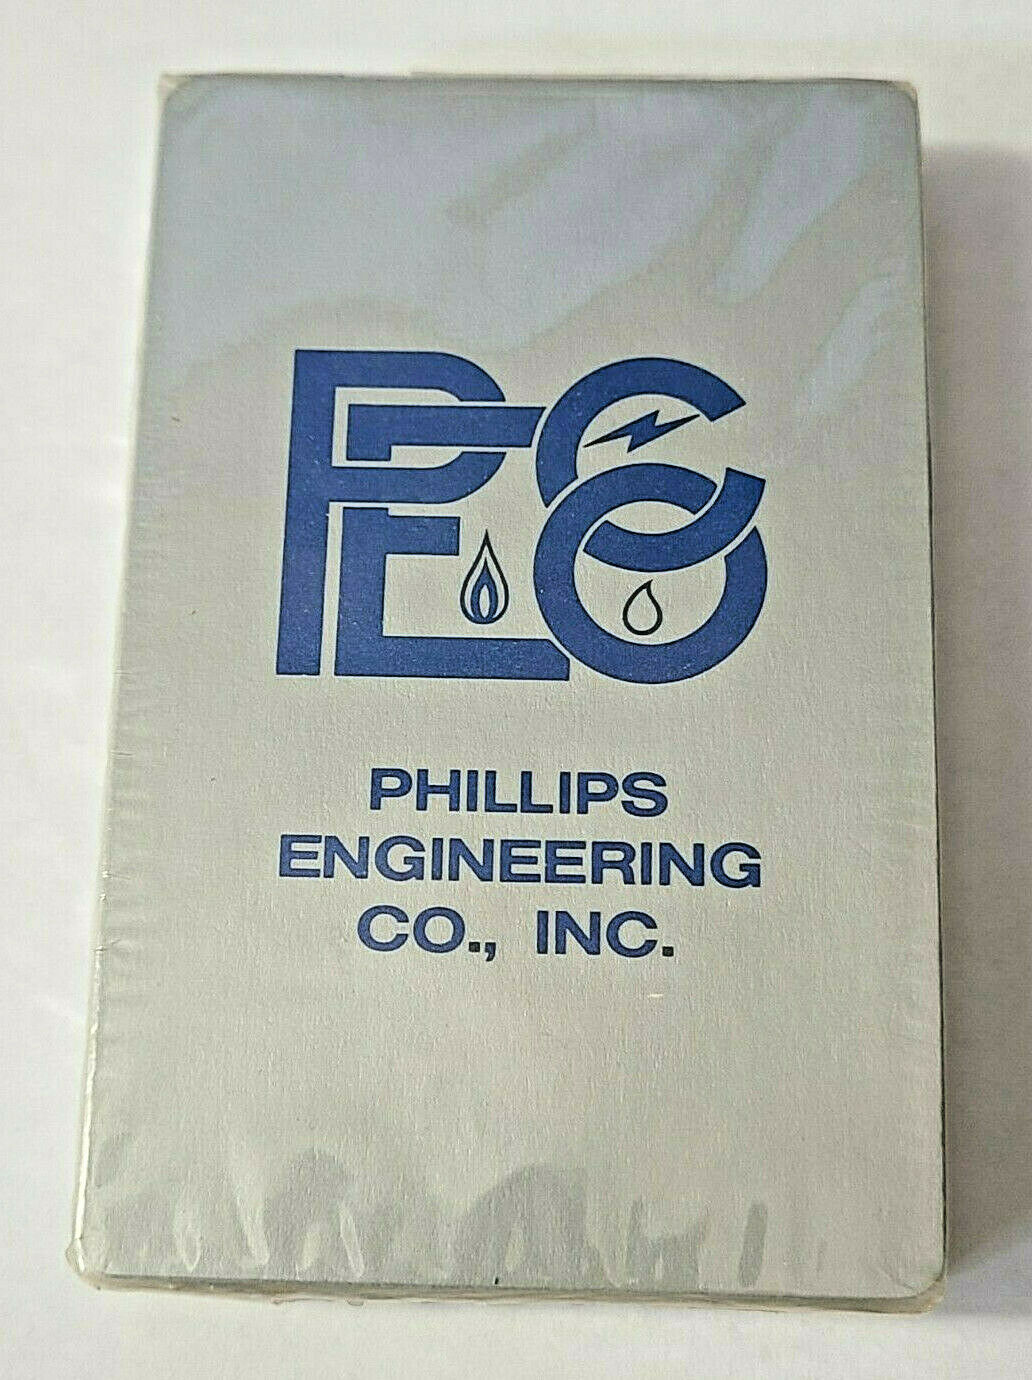 Phillips Engineering Co. Inc. PECO Deck of Playing Cards   (#35)